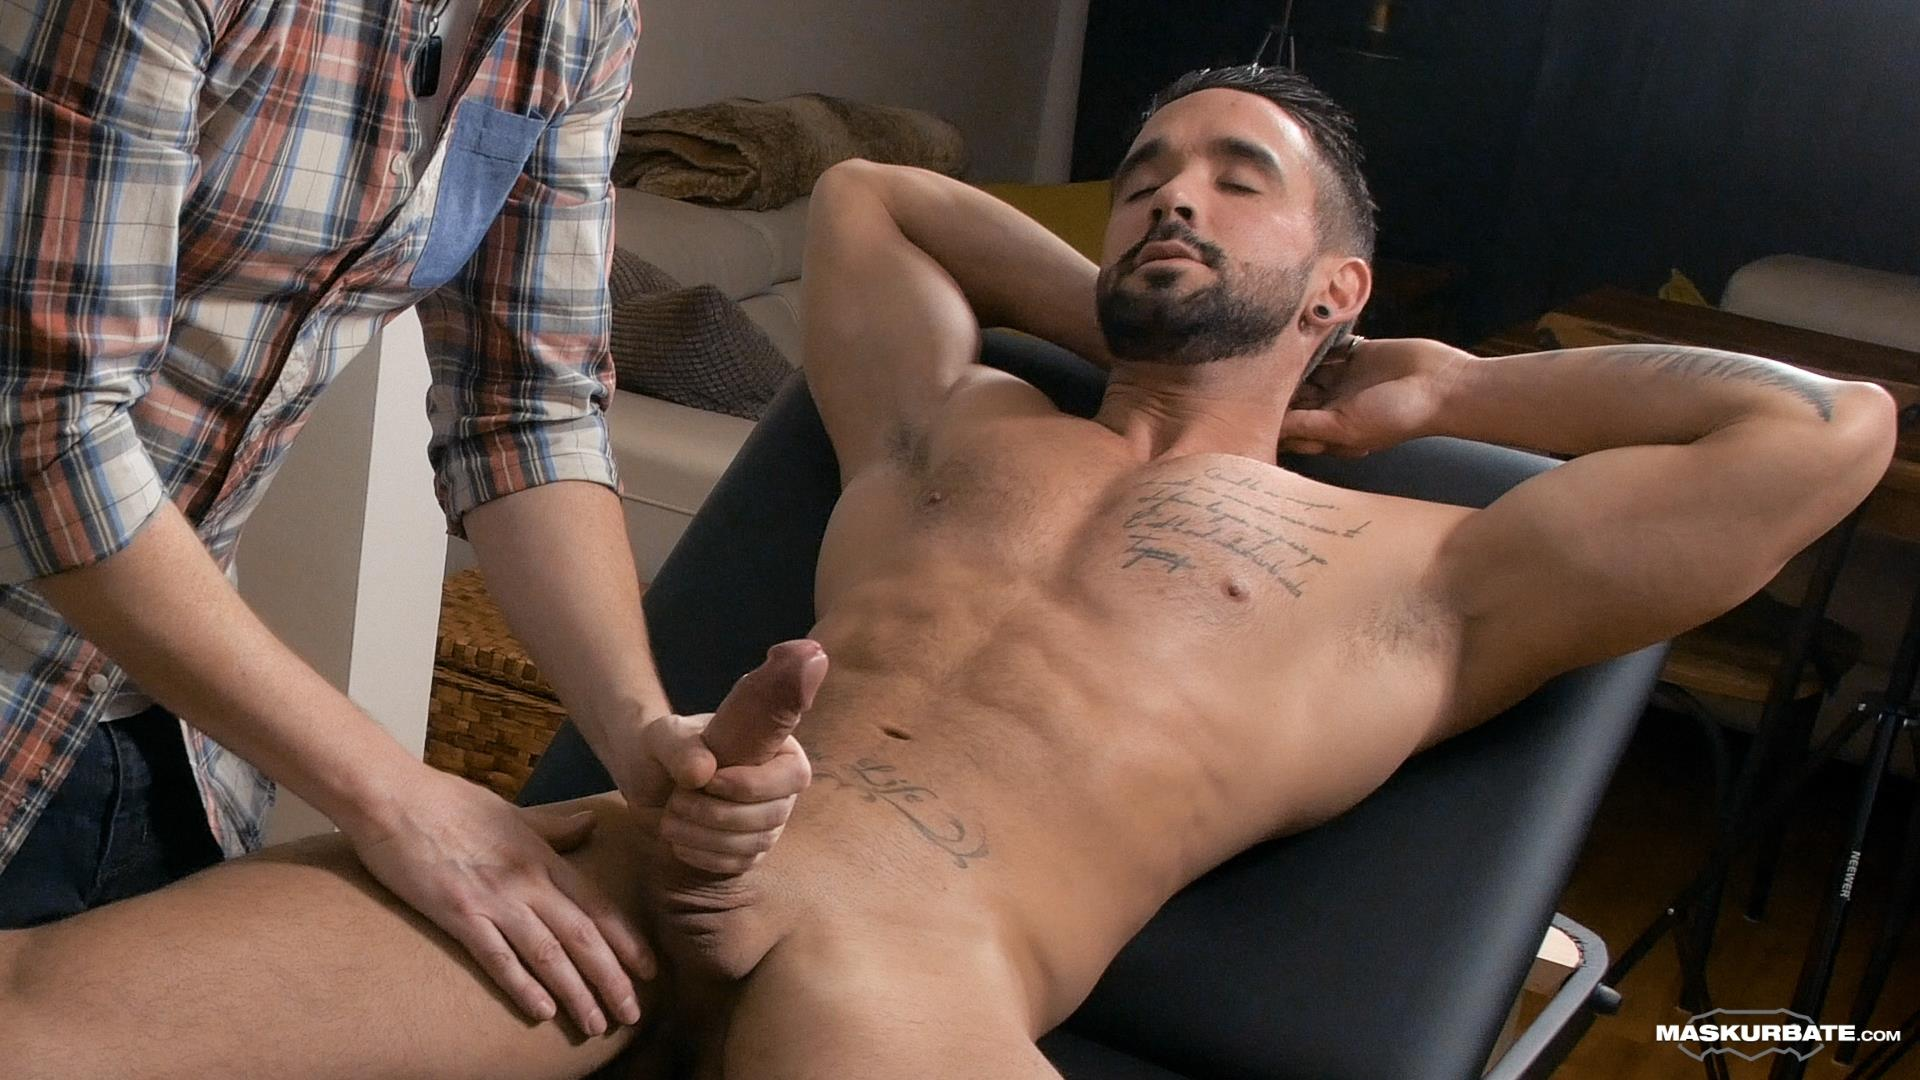 Maskurbate-Zack-Lemec-Gay-Massage-With-Happy-Ending-08 Zack Lemec Get's His First Gay Massage With A Happy Ending